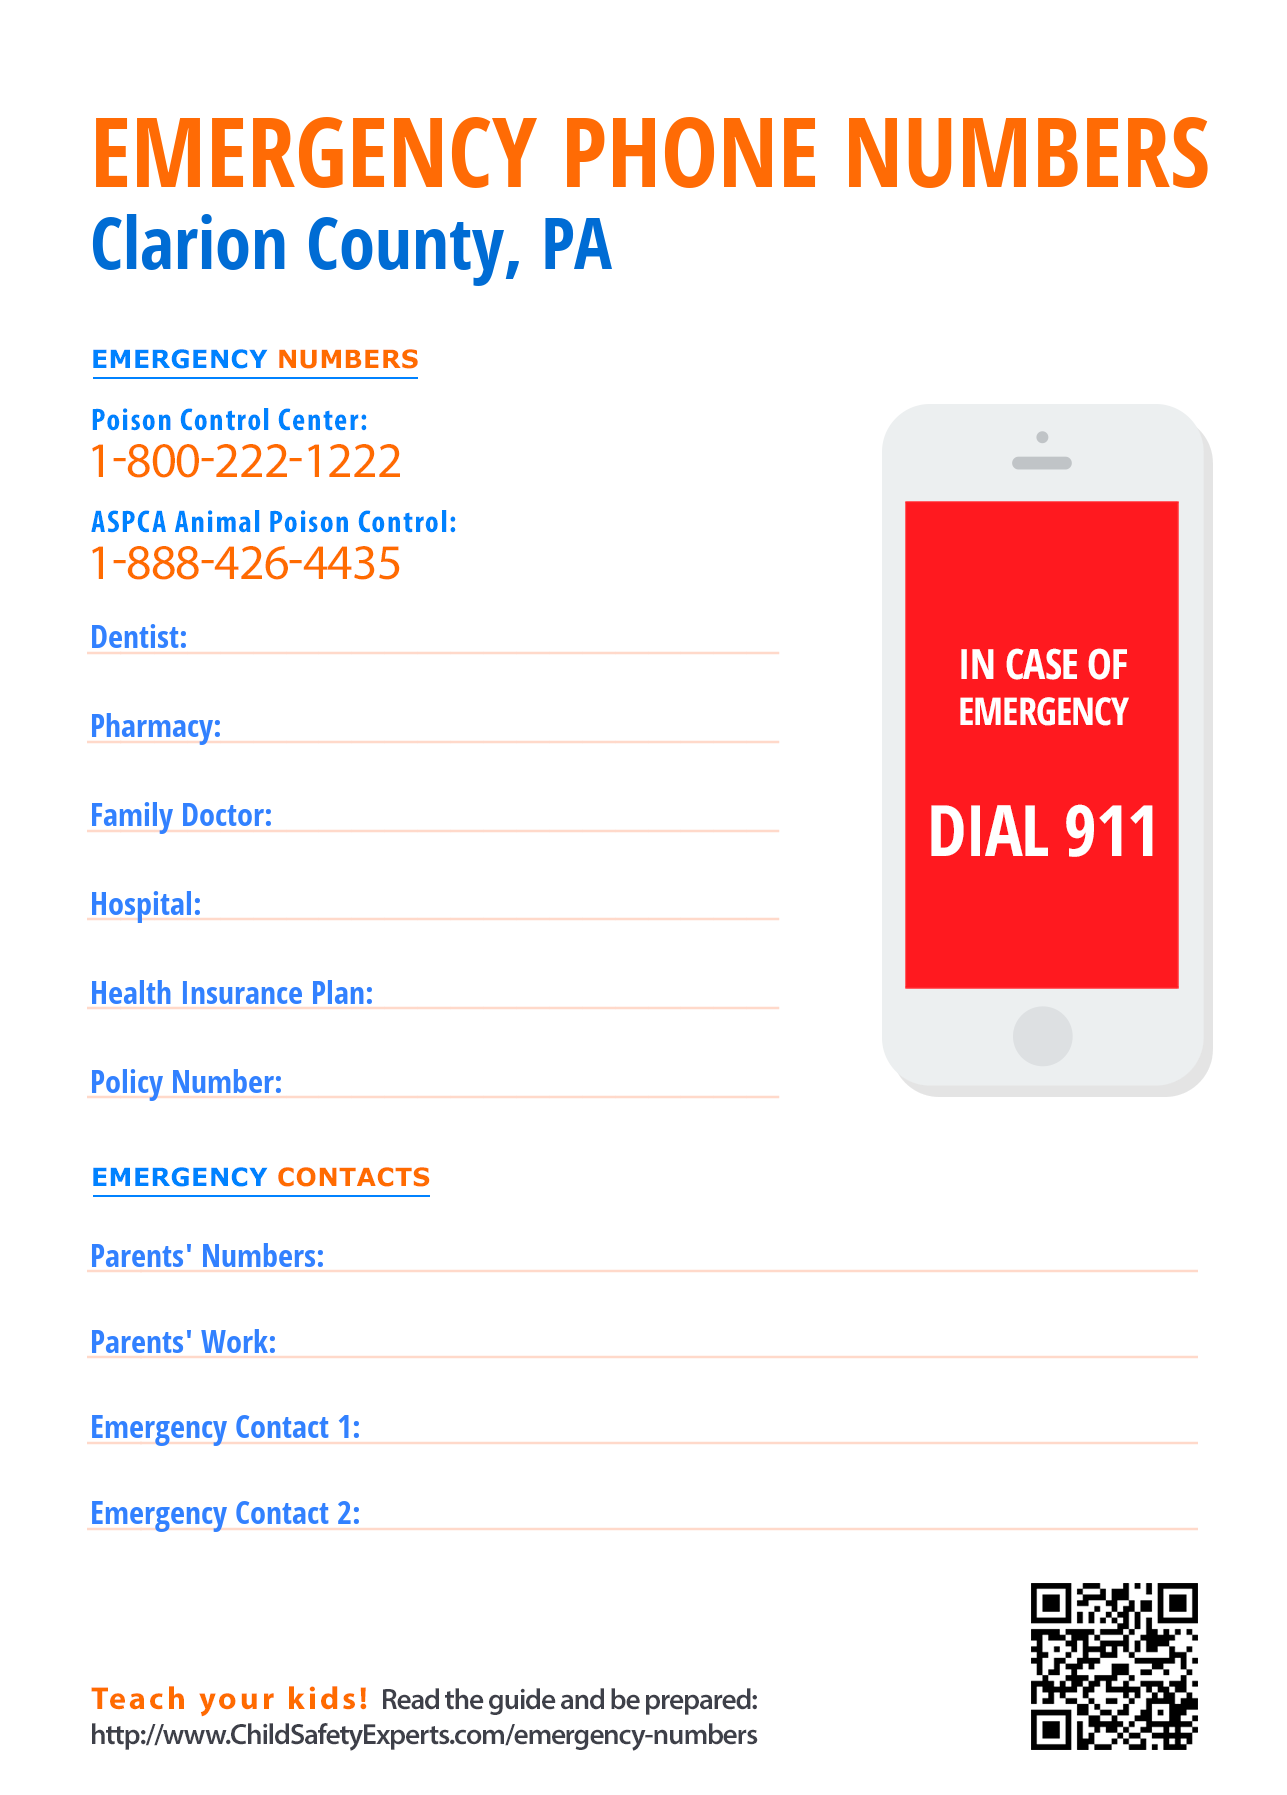 Important emergency phone numbers in Clarion County, Pennsylvania